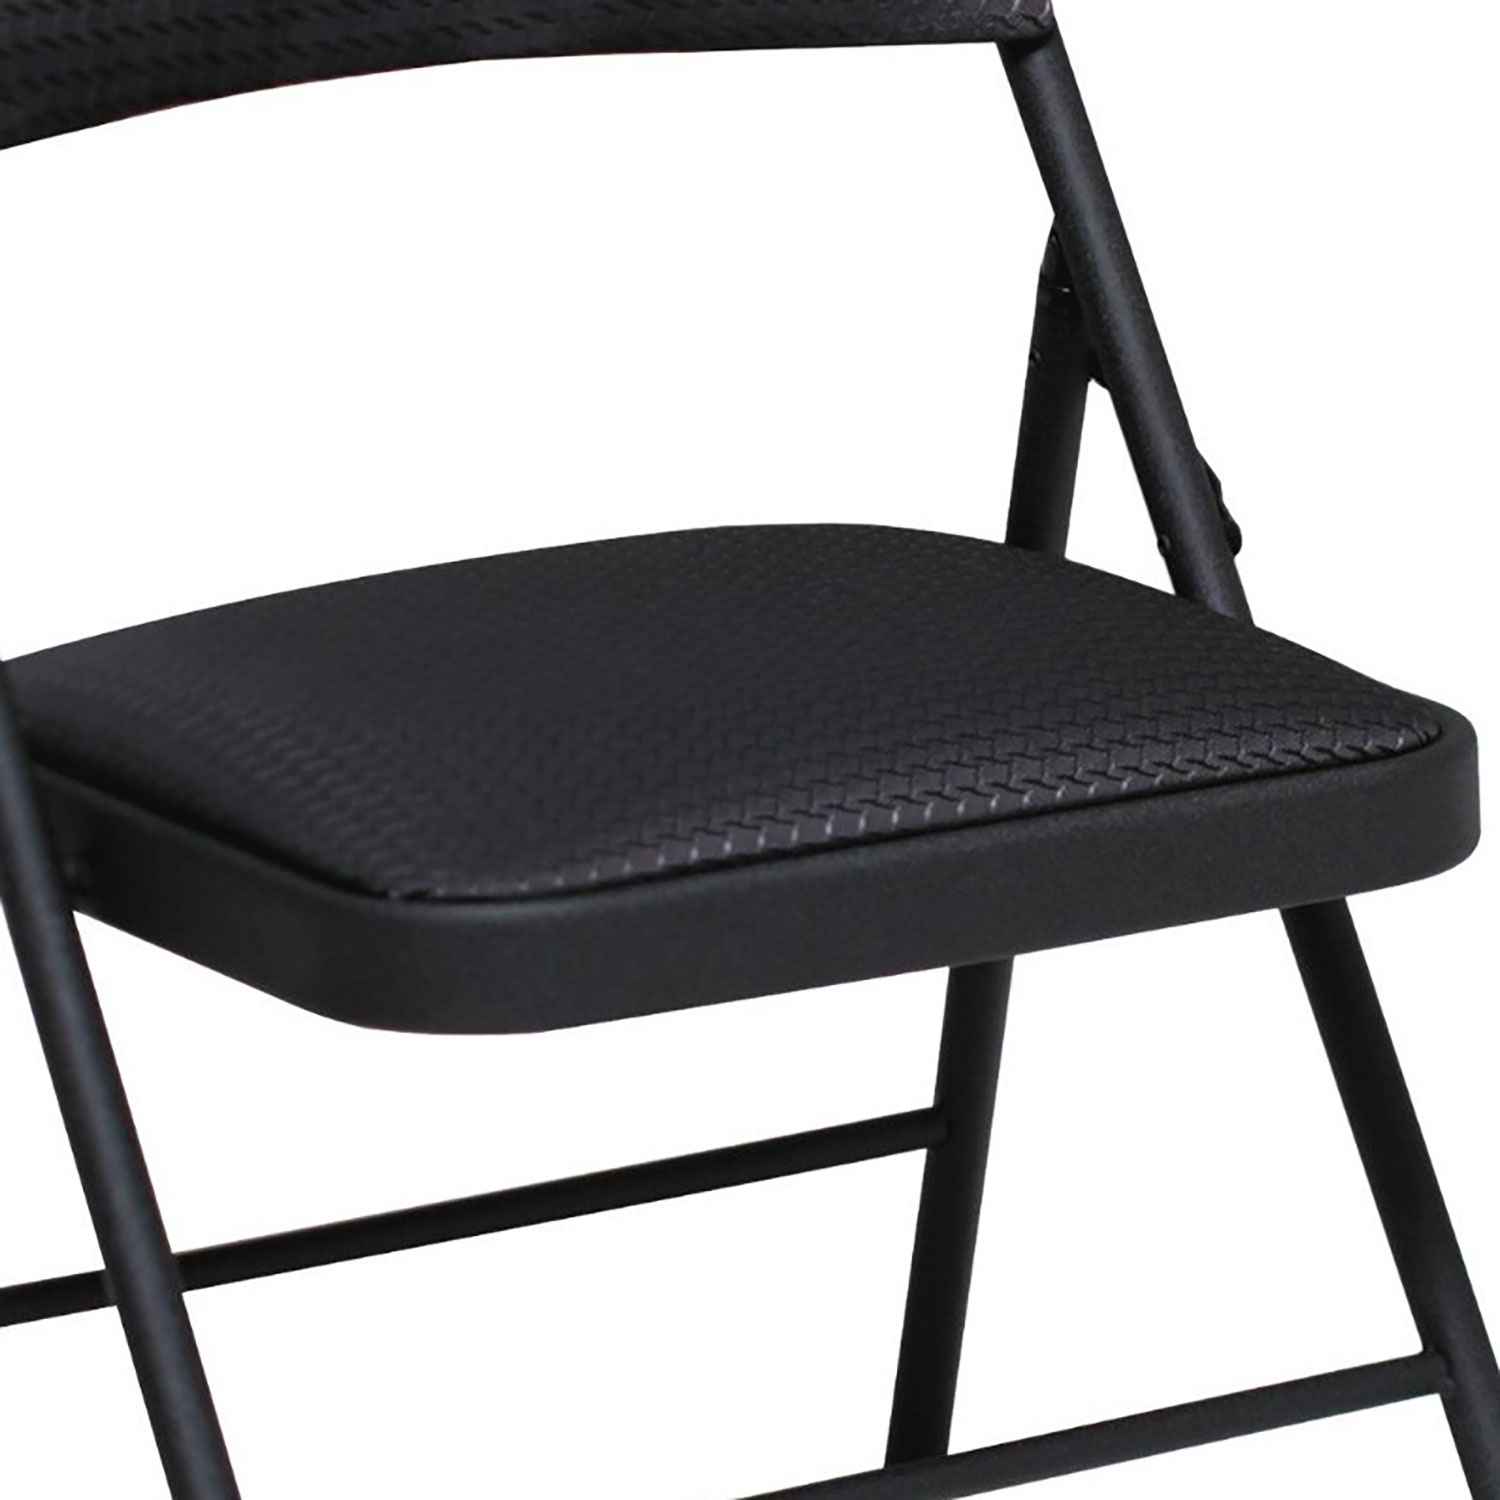 Cosco mercial Indoor Outdoor Black Folding Chair with Fabric